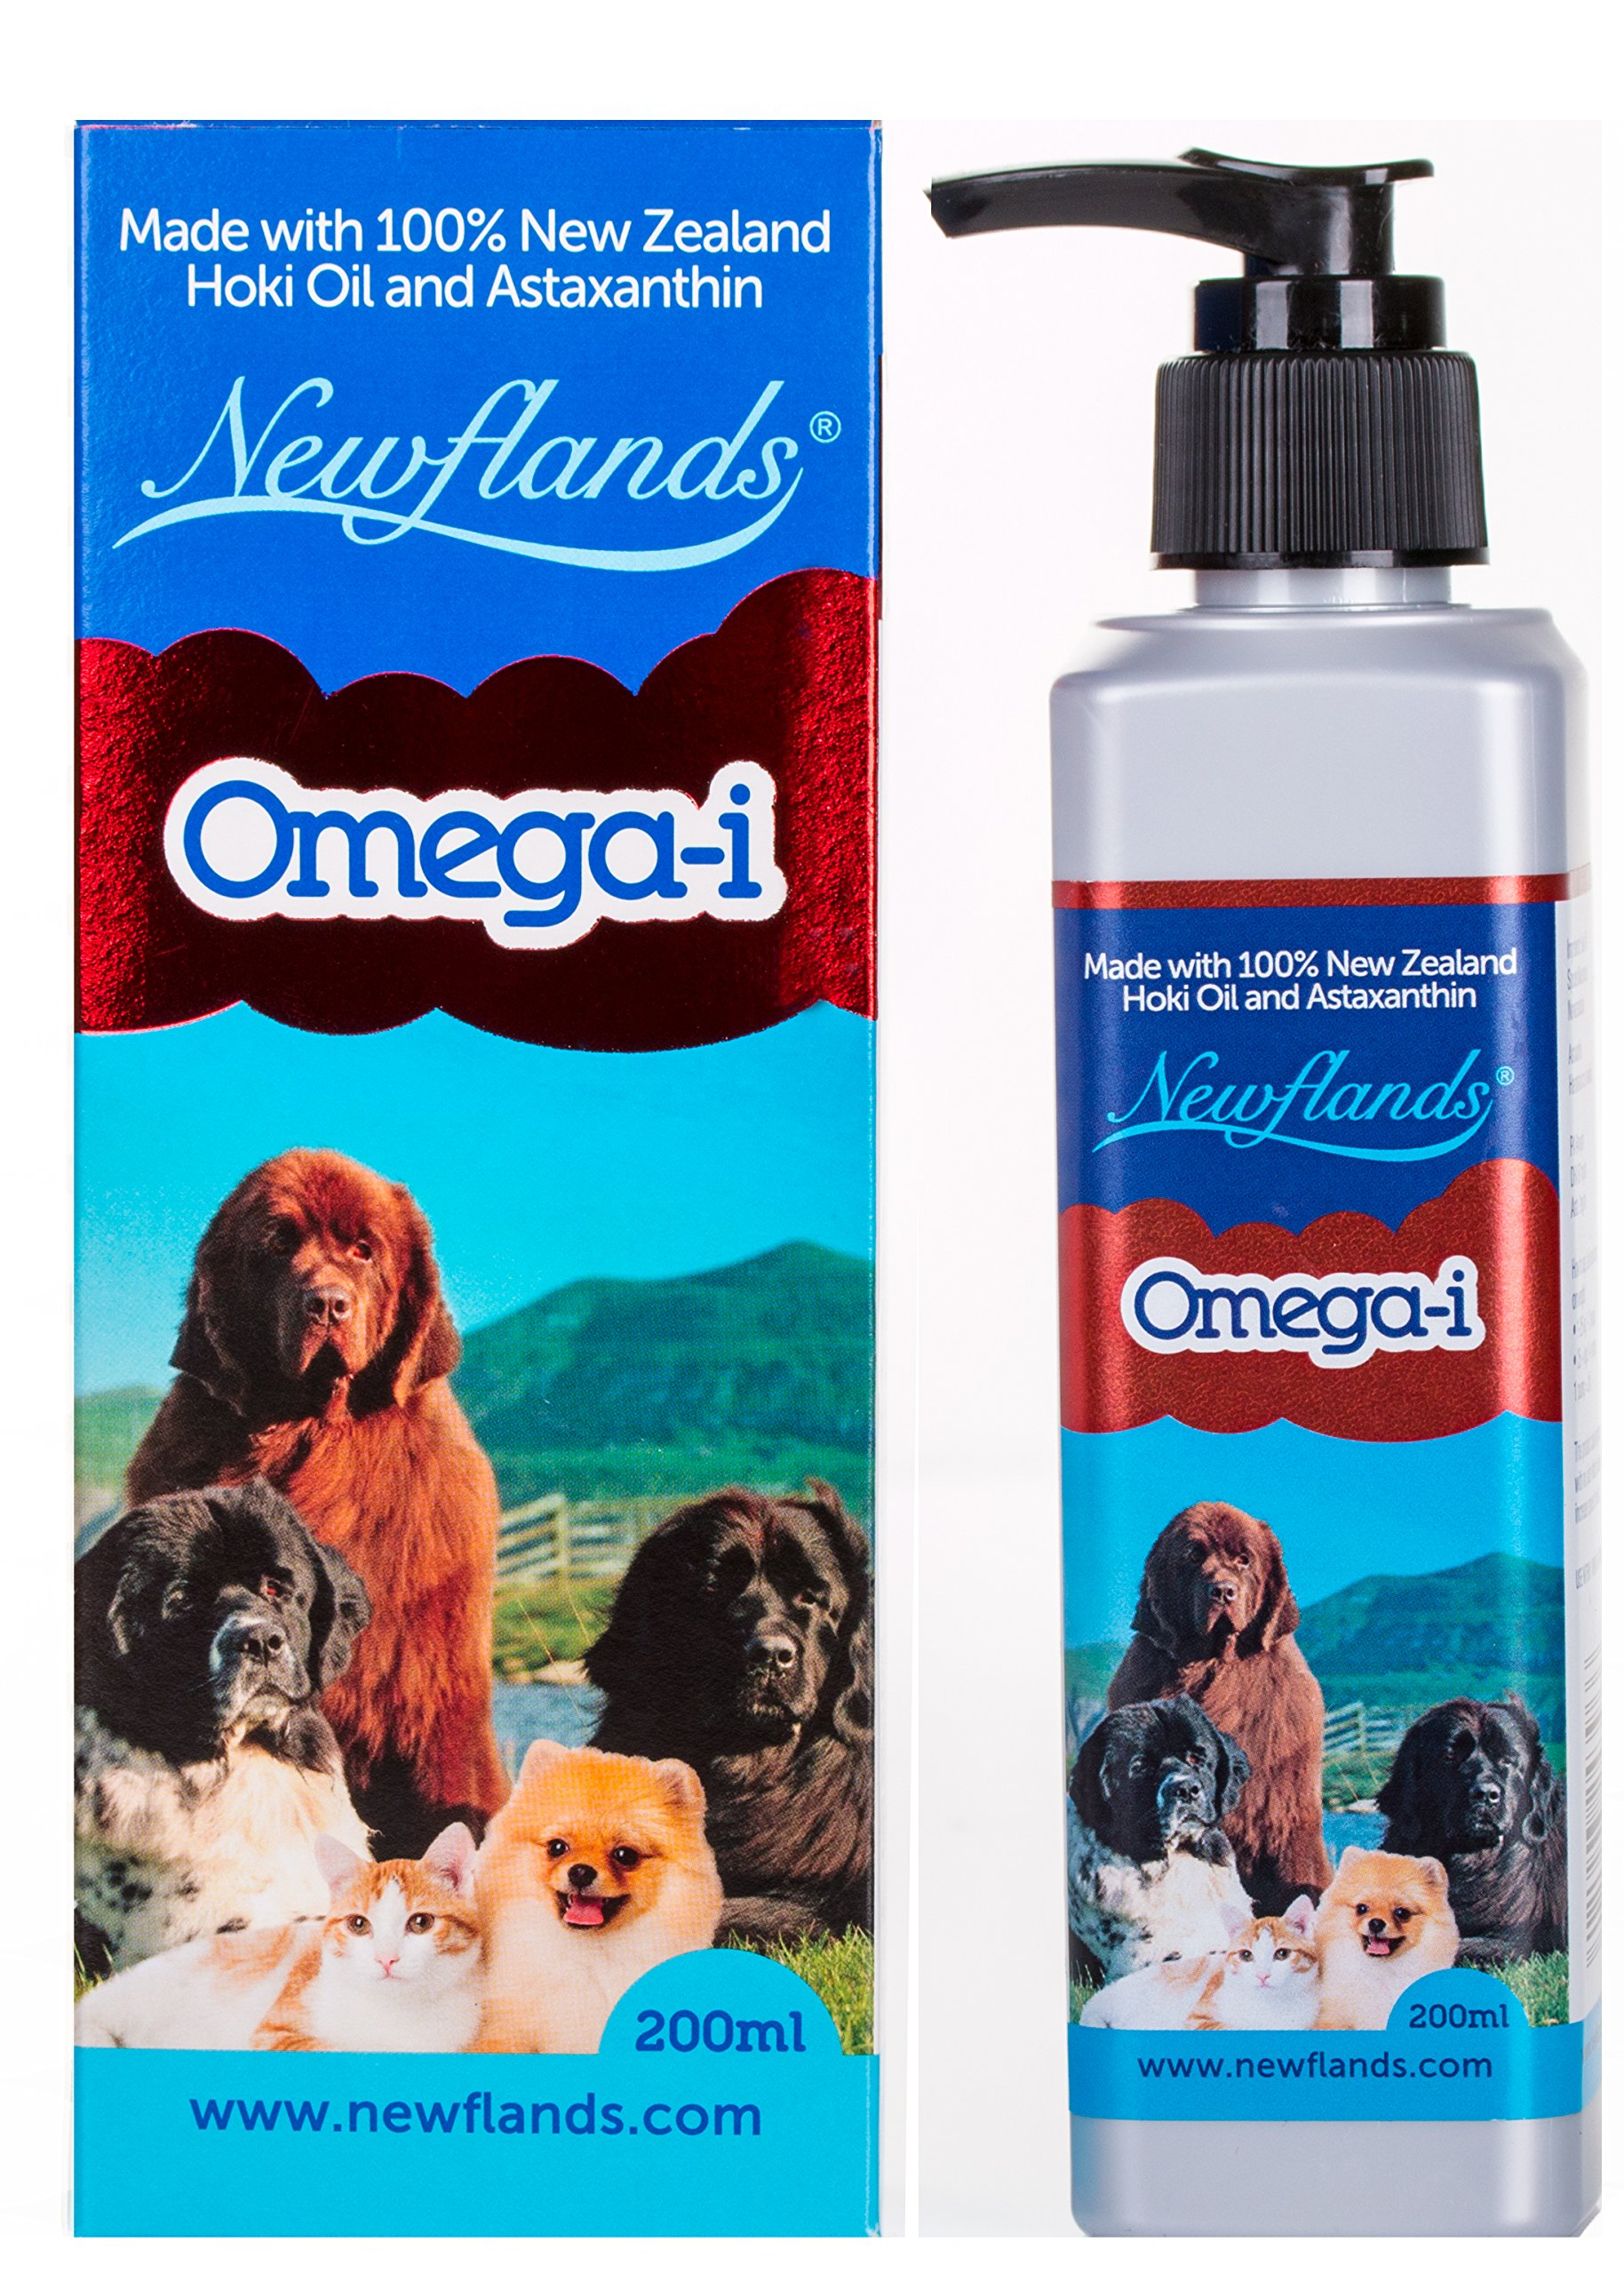 Newflands Pet Omega-i Oil Natural, Veterinary Grade, Fish Oil Food Supplement For Dogs and Cats, 6.76oz (200ml)